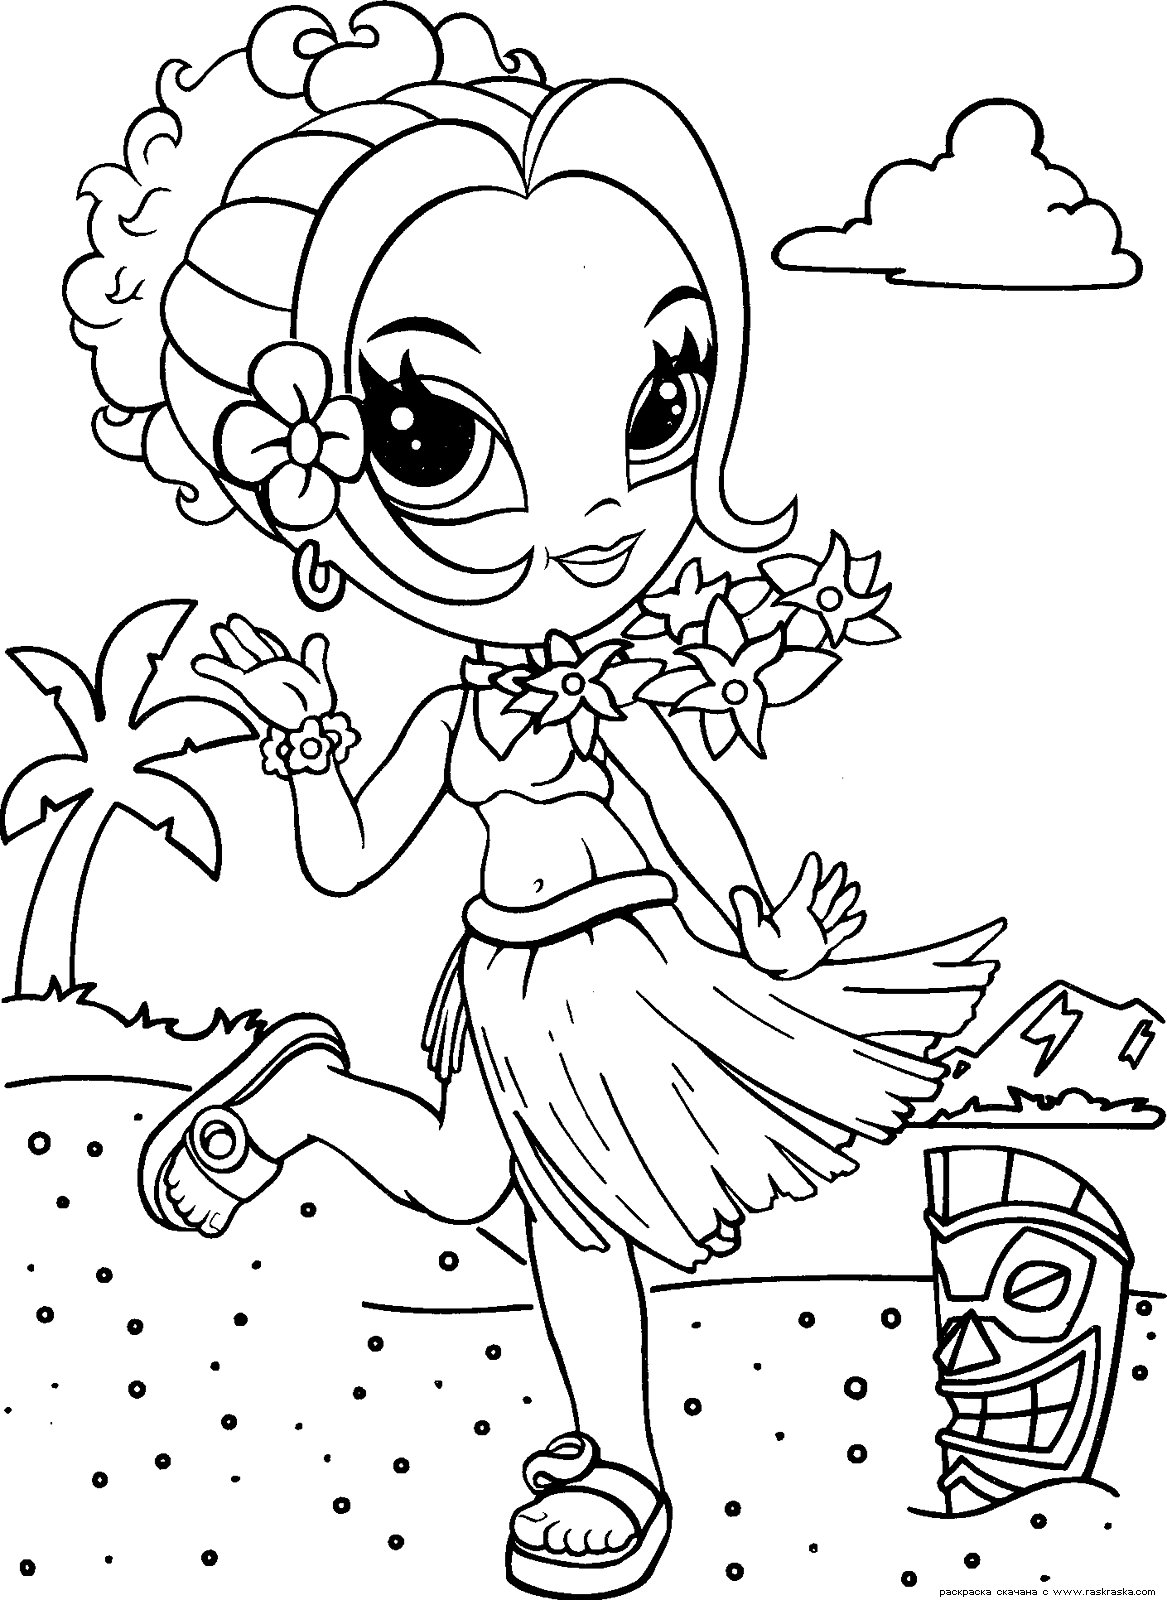 lisa frank printable coloring pages lisa frank coloring pages to download and print for free frank lisa coloring printable pages